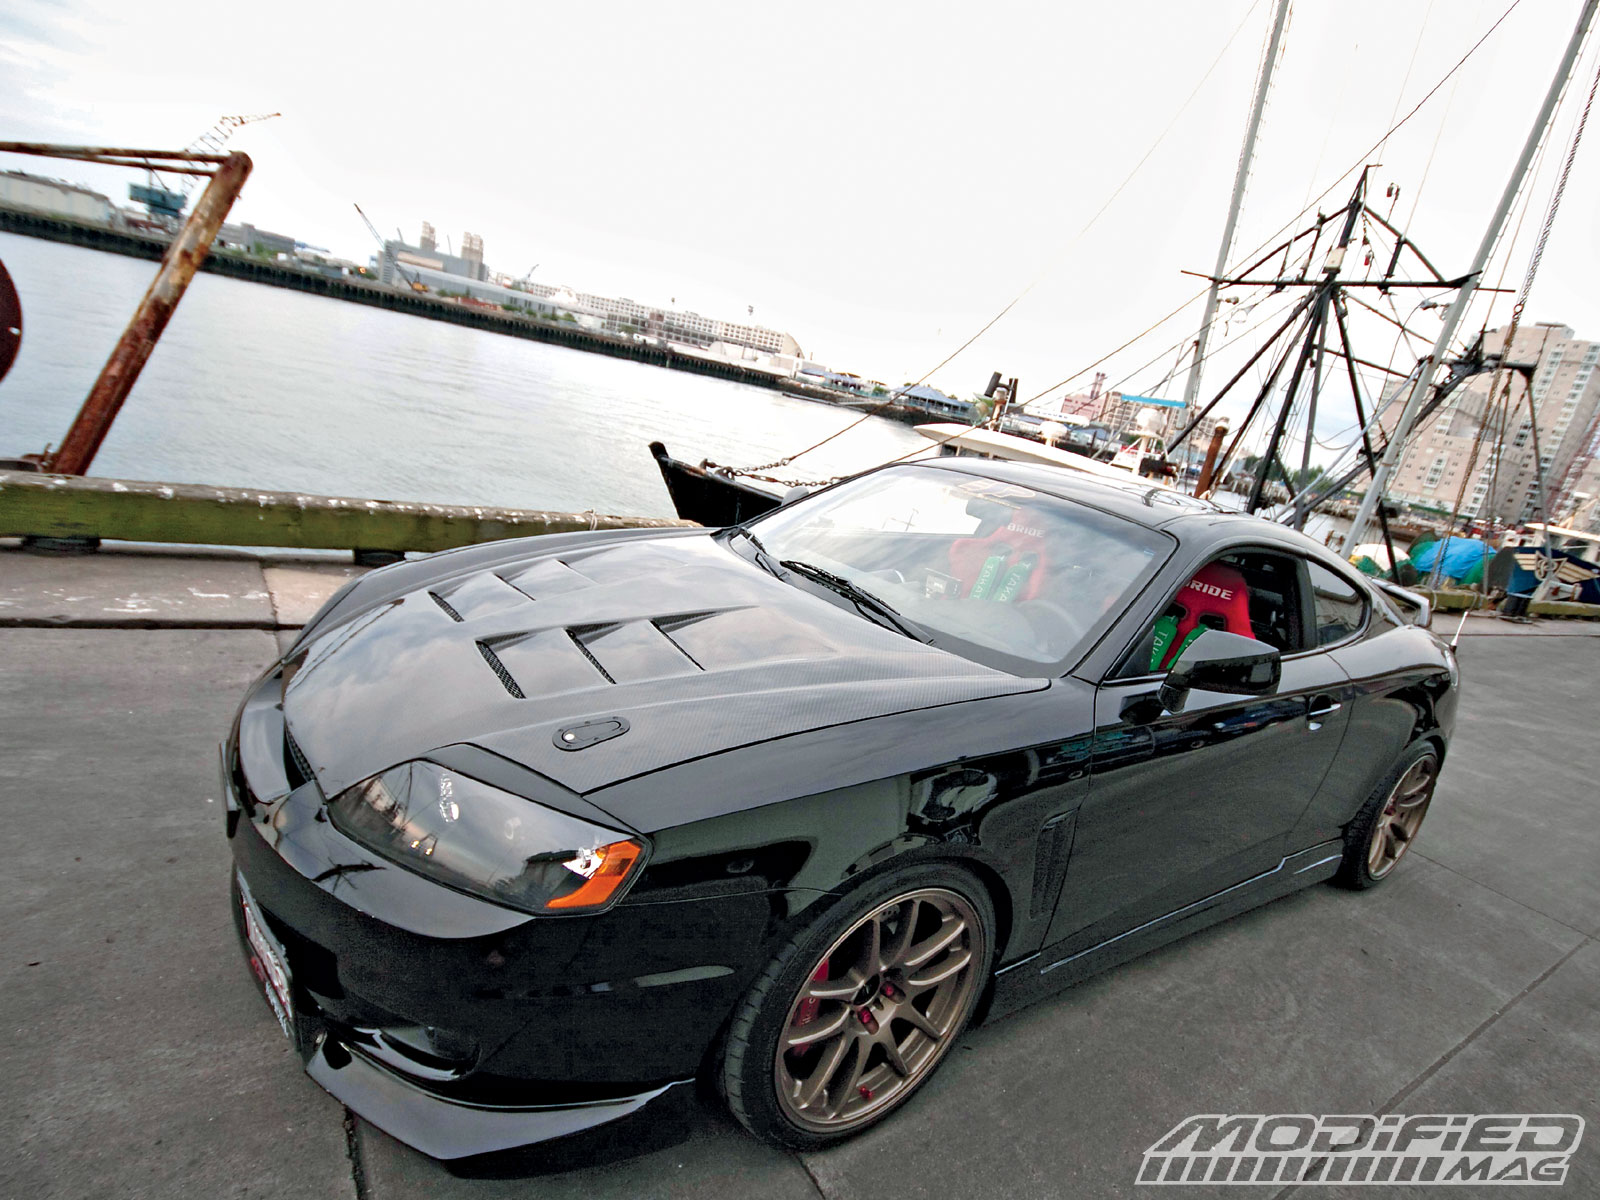 2003 hyundai tiburon gt modified magazine super street